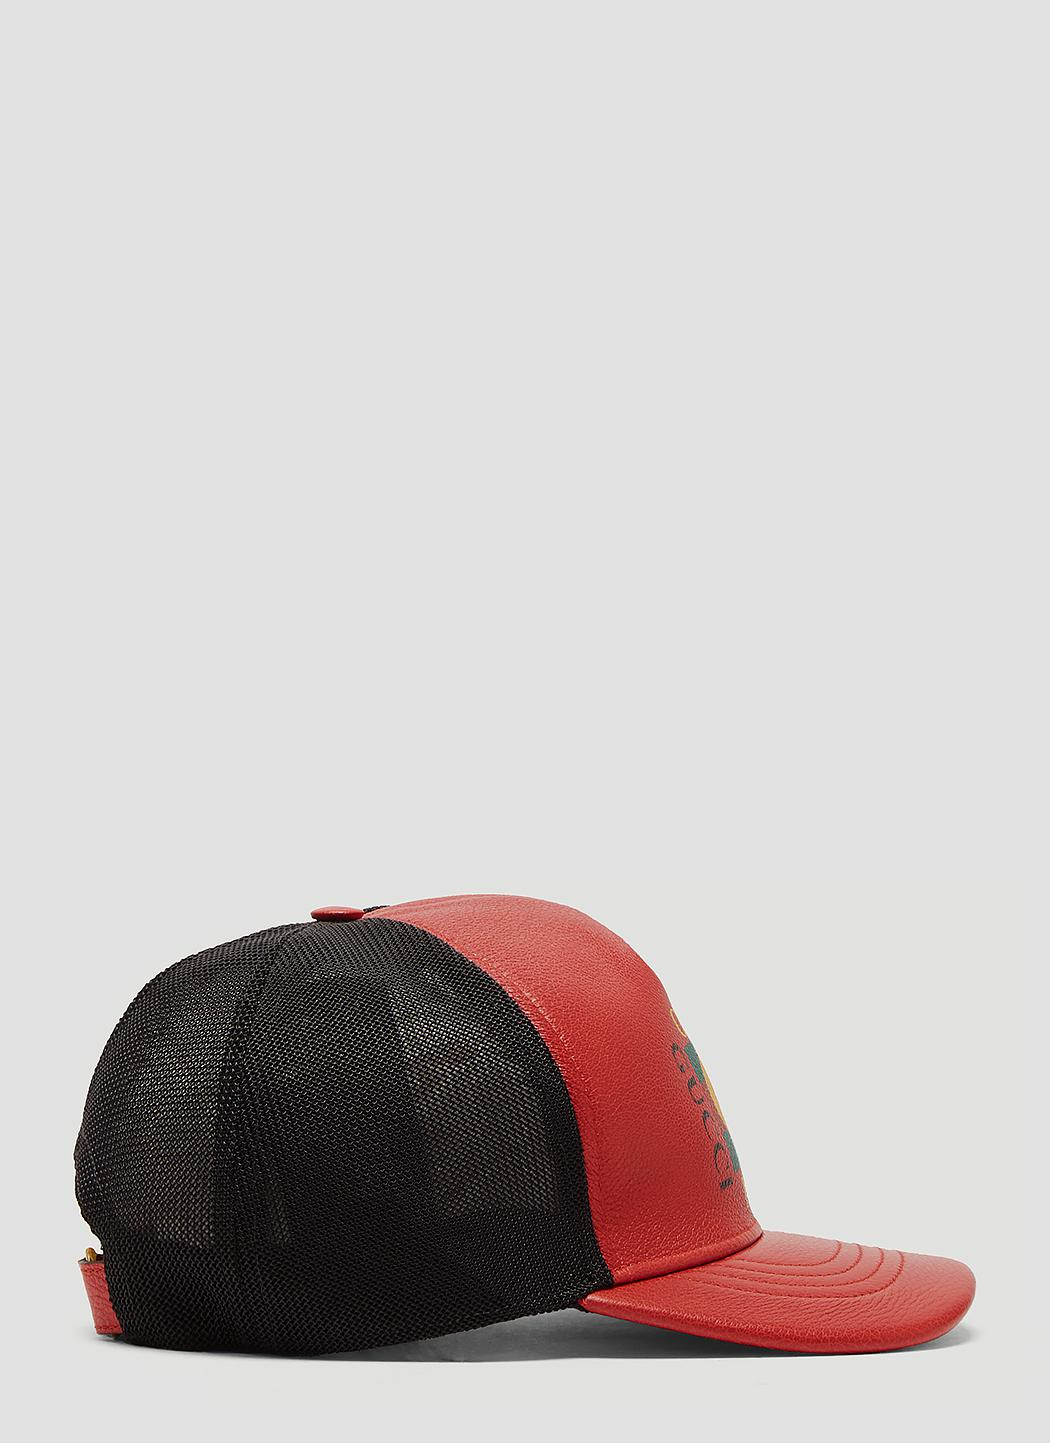 4bca255facc Gucci Print Leather Baseball Hat in Red for Men - Save 35% - Lyst